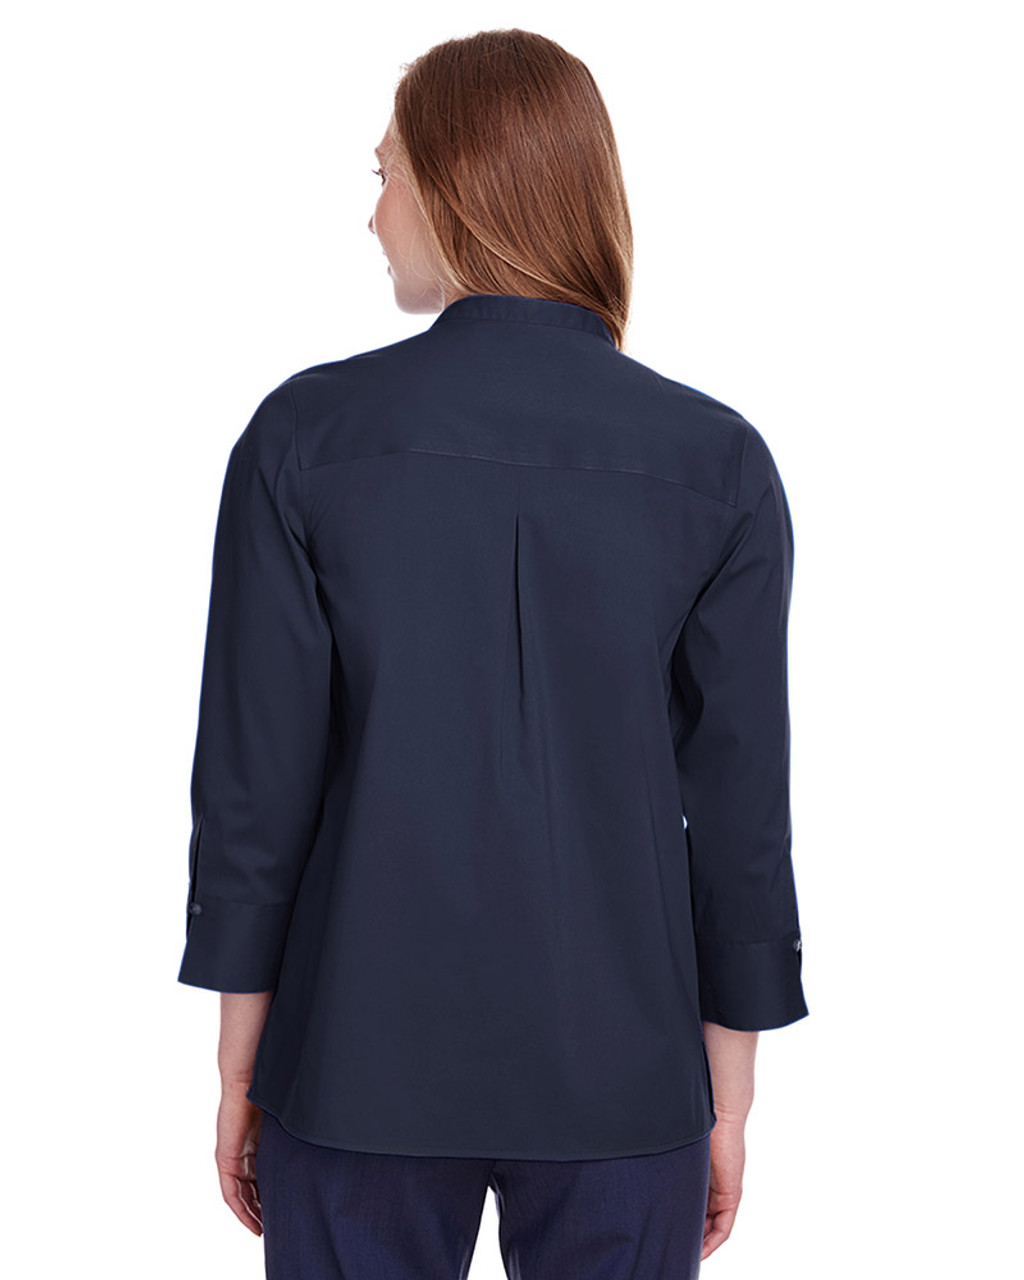 Navy - back, DG560W Devon & Jones Ladies' Crown Collection™ Stretch Broadcloth 3/4 Sleeve Blouse | Blankclothing.ca